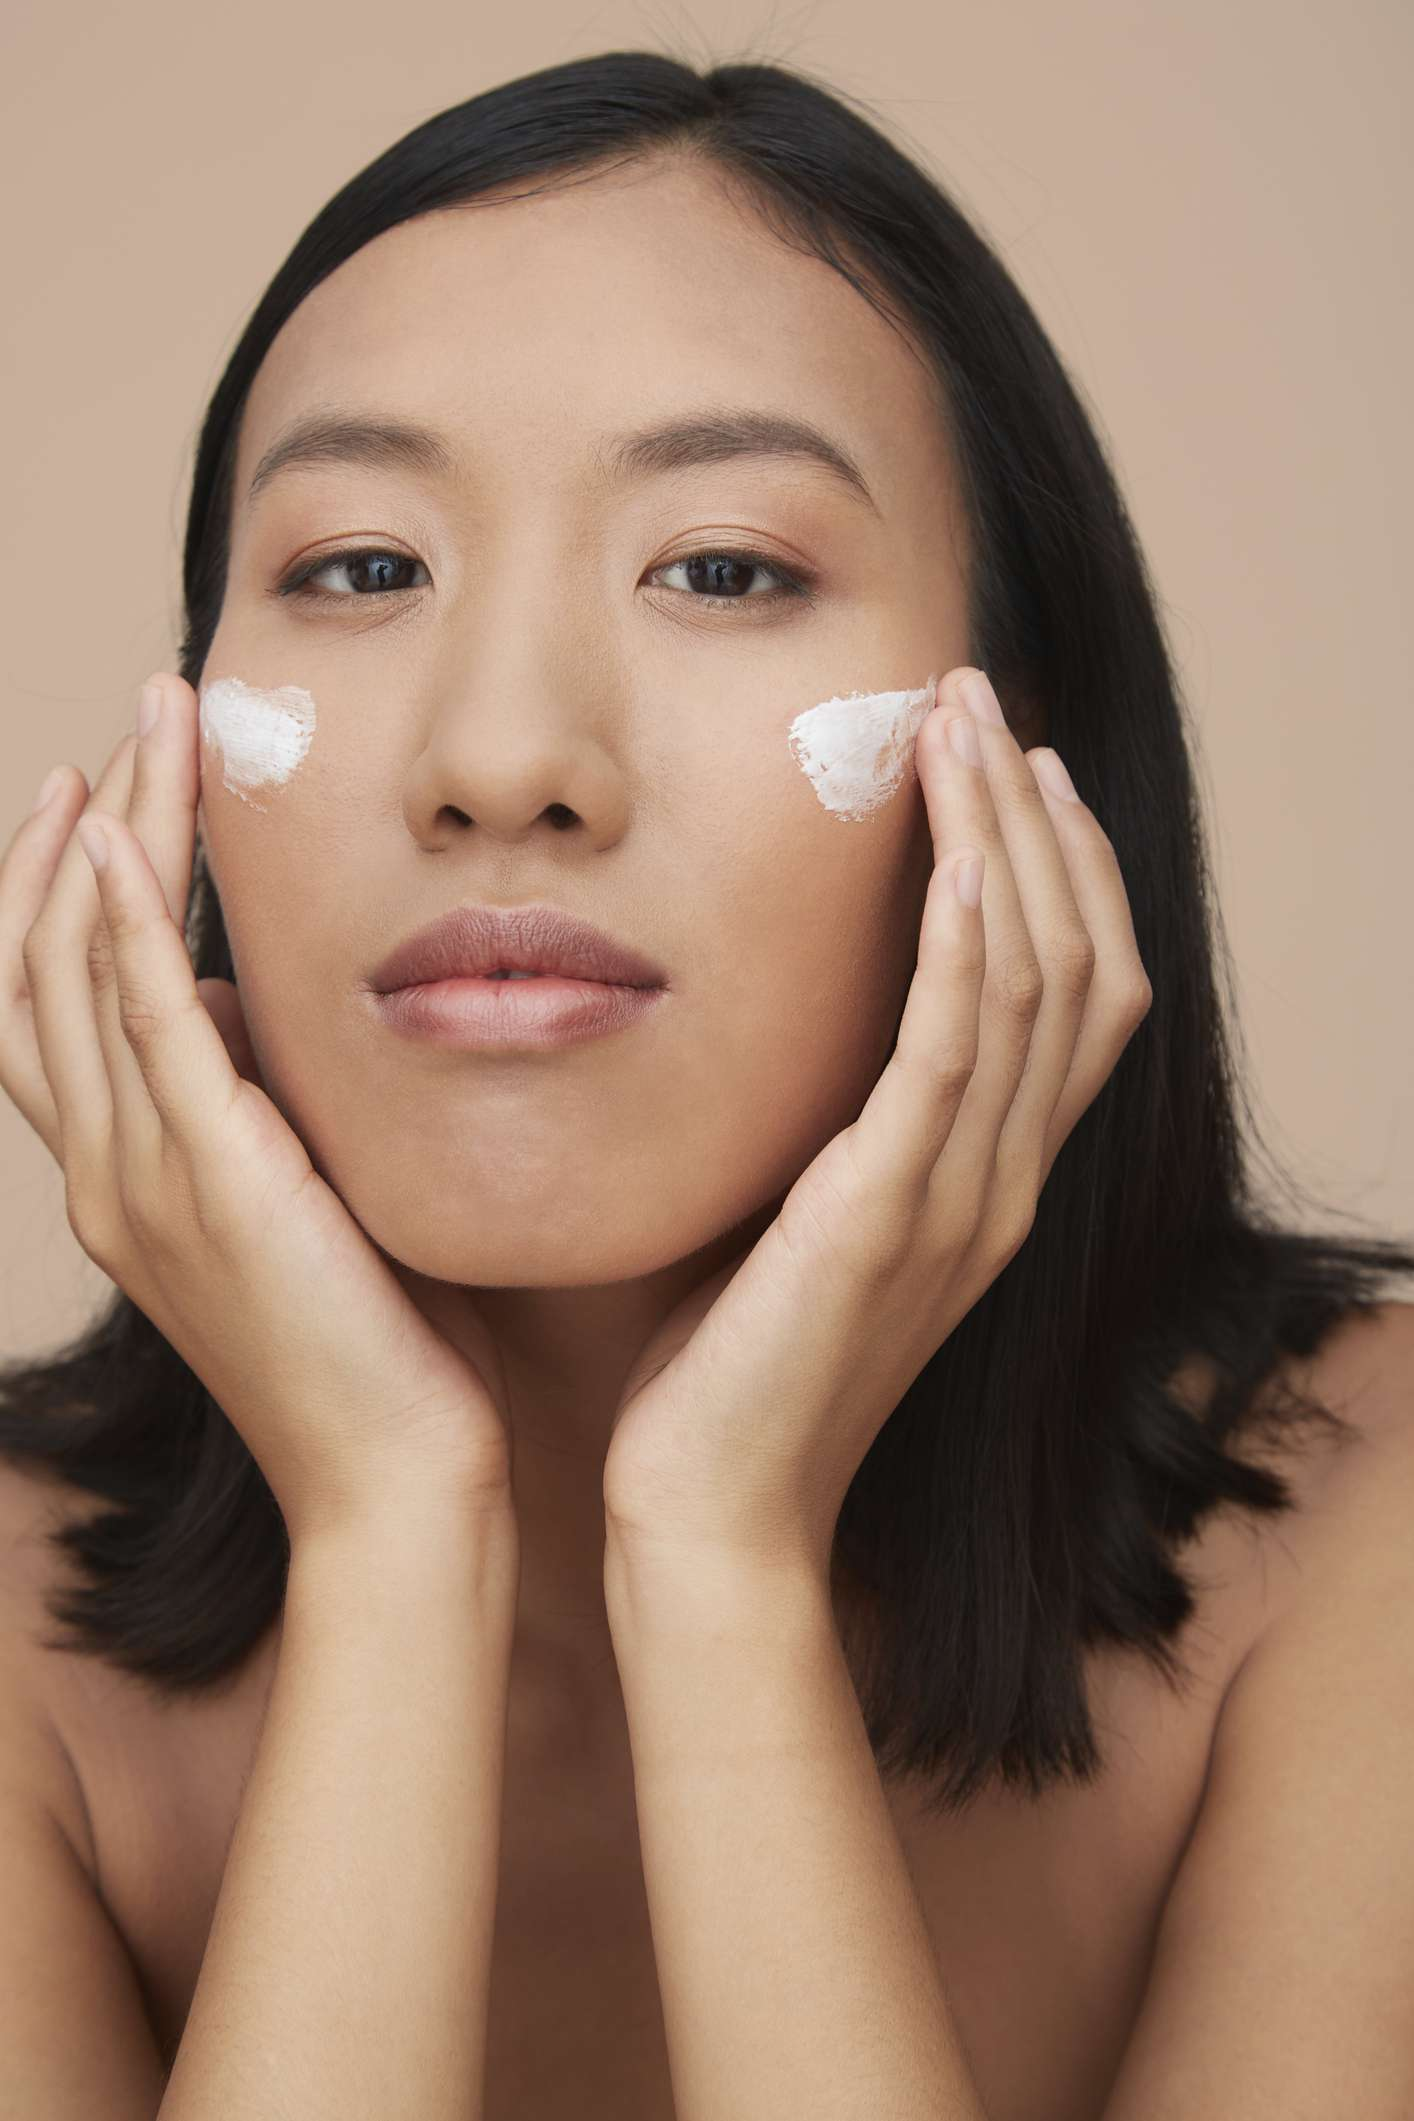 woman applying creme to face